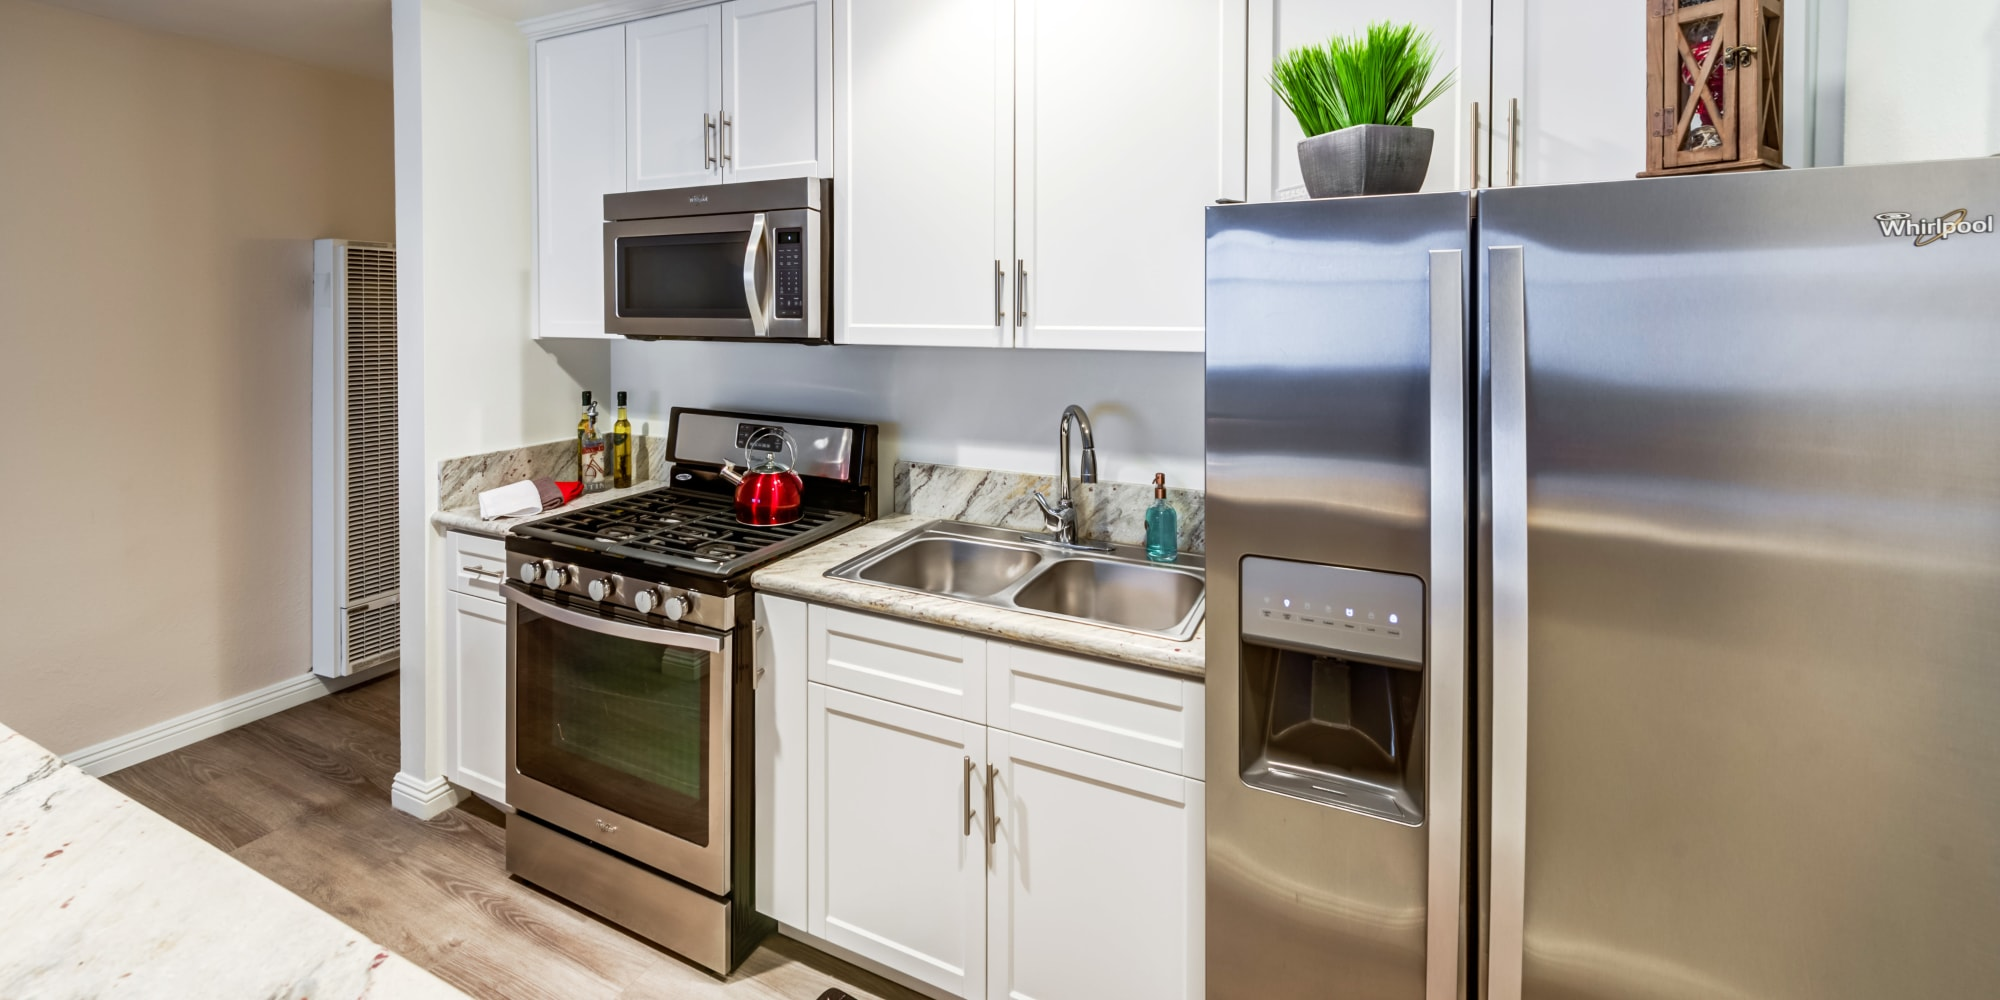 Hardwood flooring and stainless-steel appliances in a studio apartment's kitchen at Mediterranean Village in West Hollywood, California